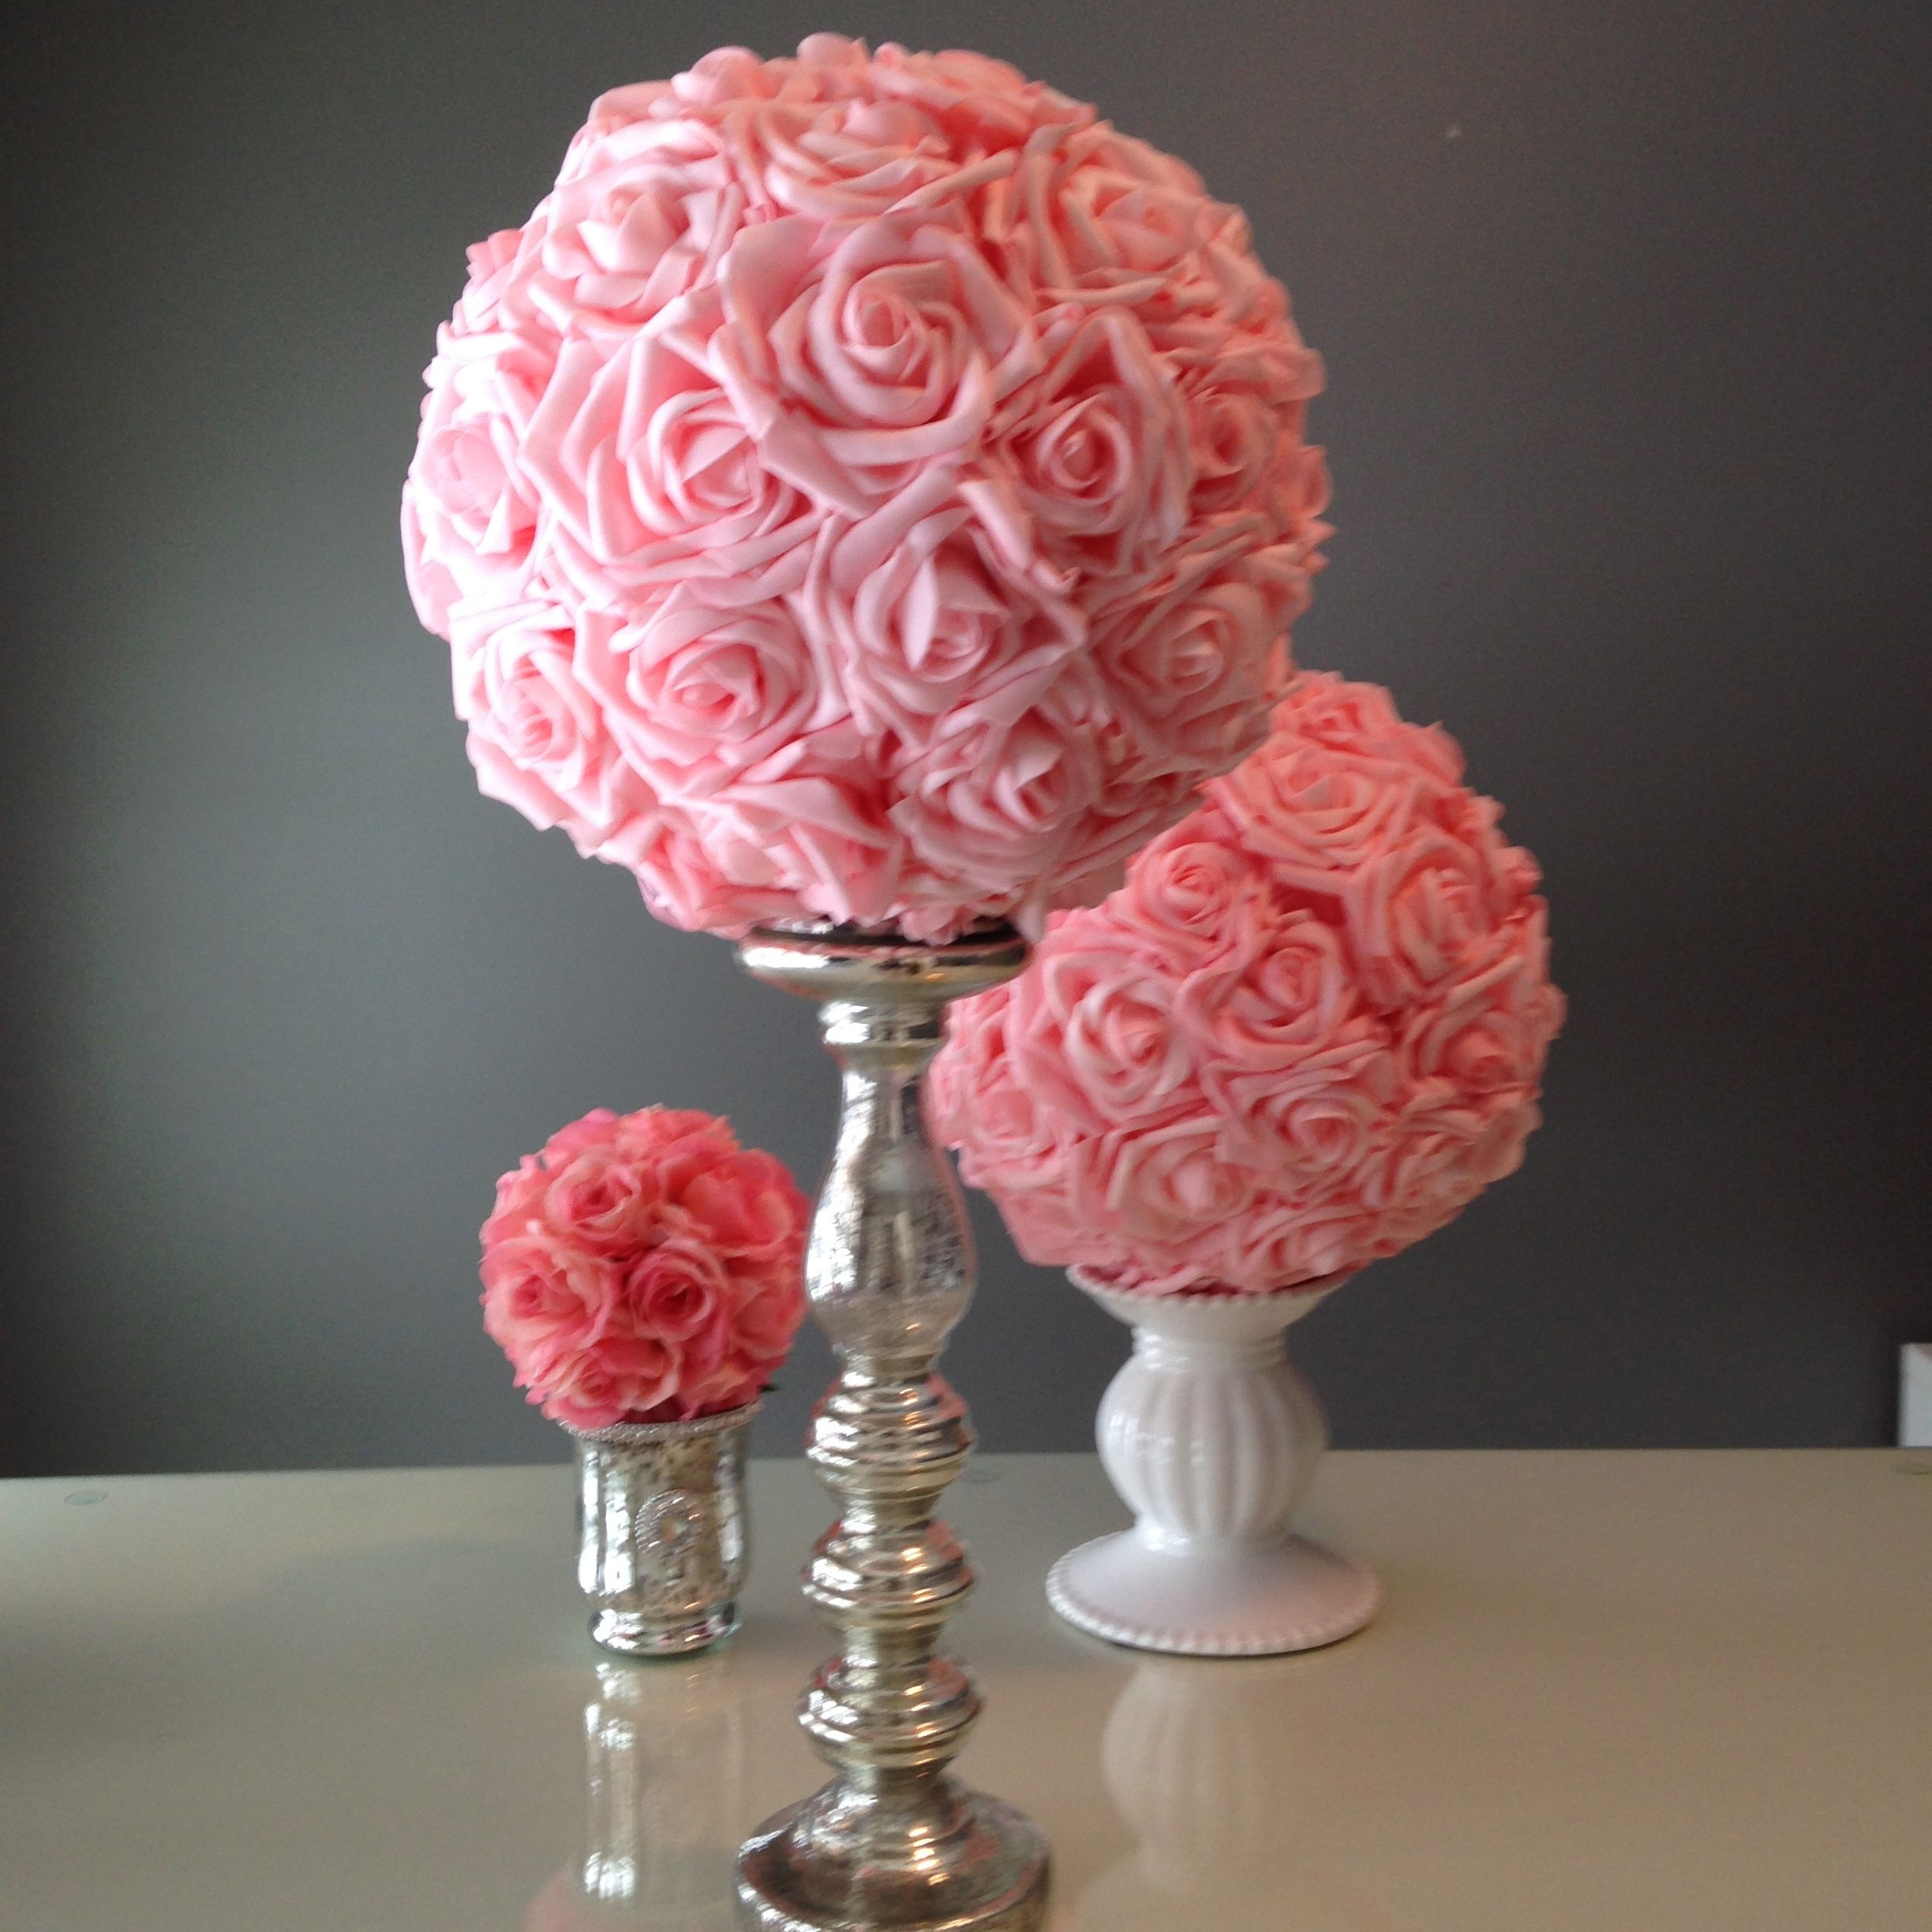 Pink kissing balls for wedding centerpieces | Something Borrowed ...